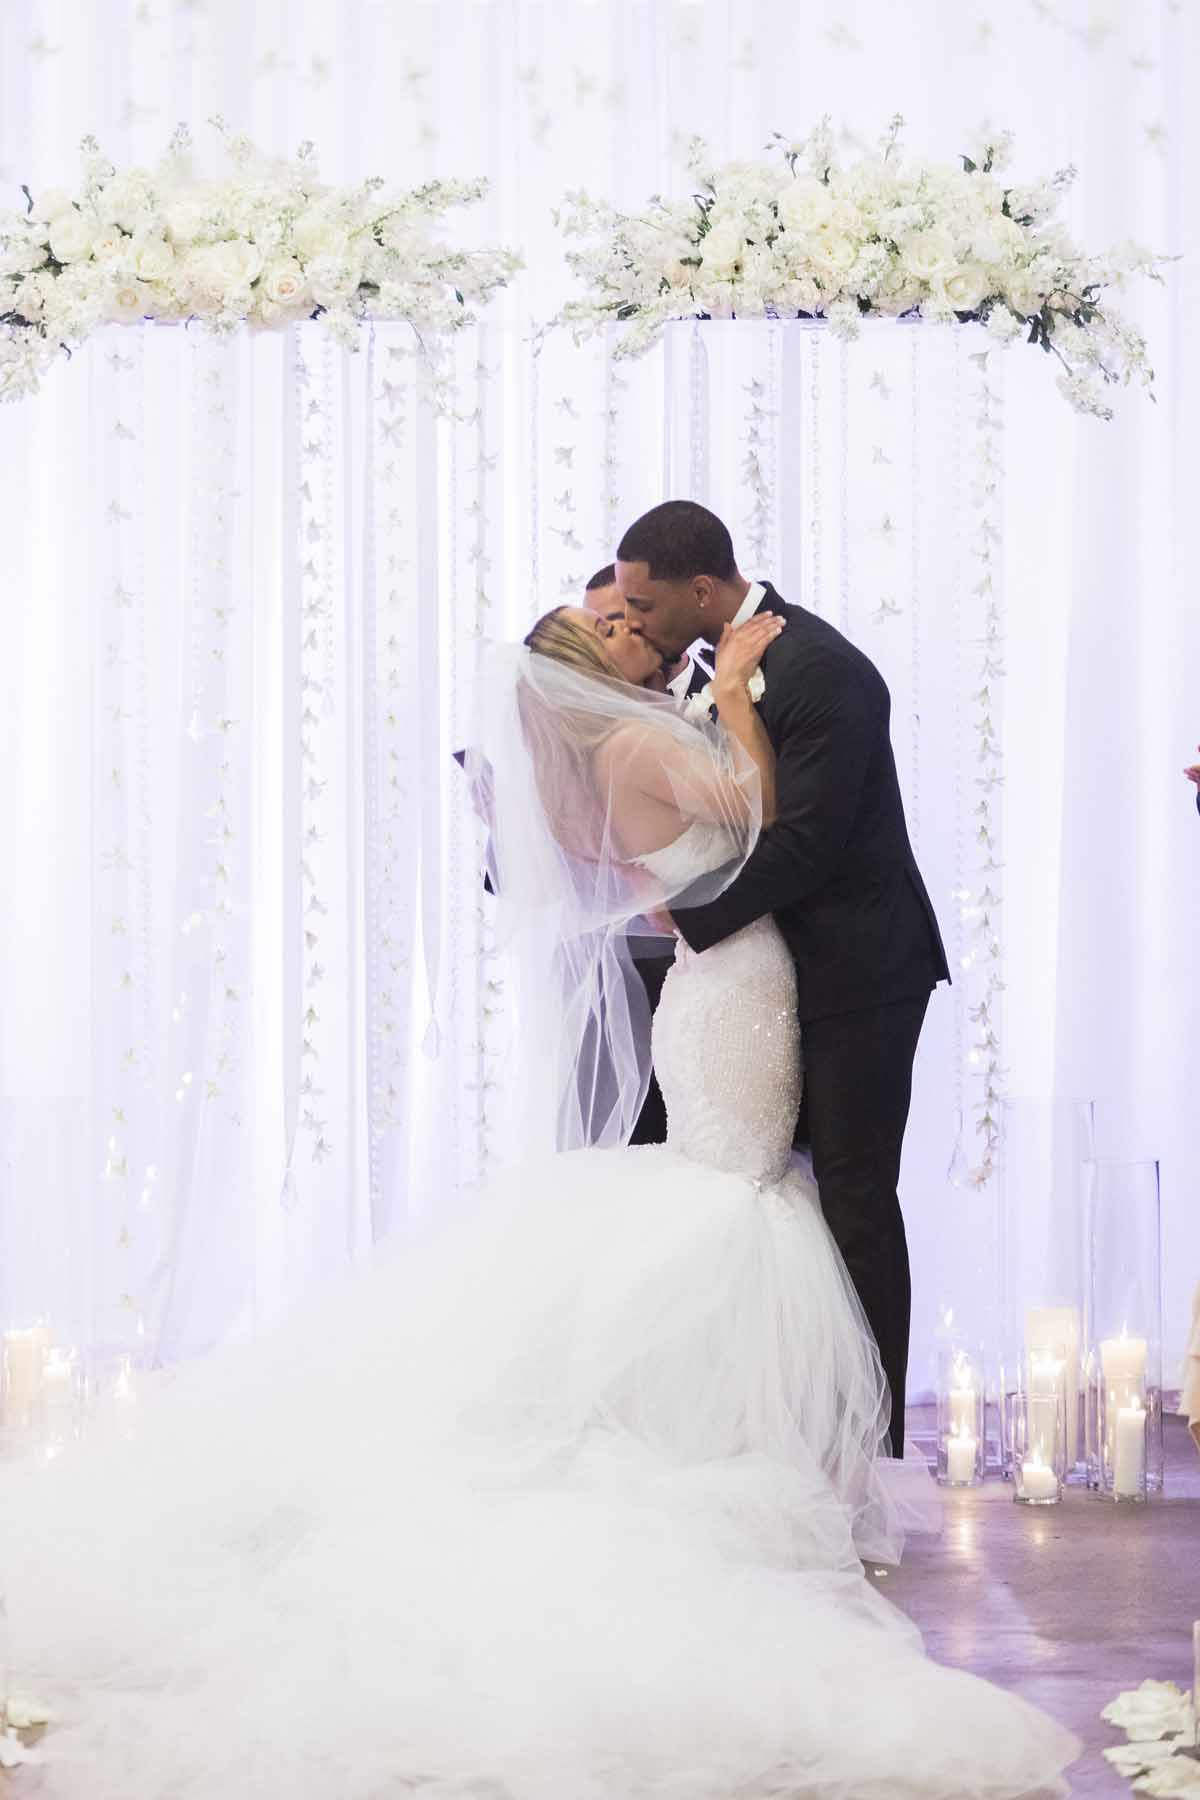 Bride and groom kissing in front of modern wedding arch in all white with clear lucite pillars